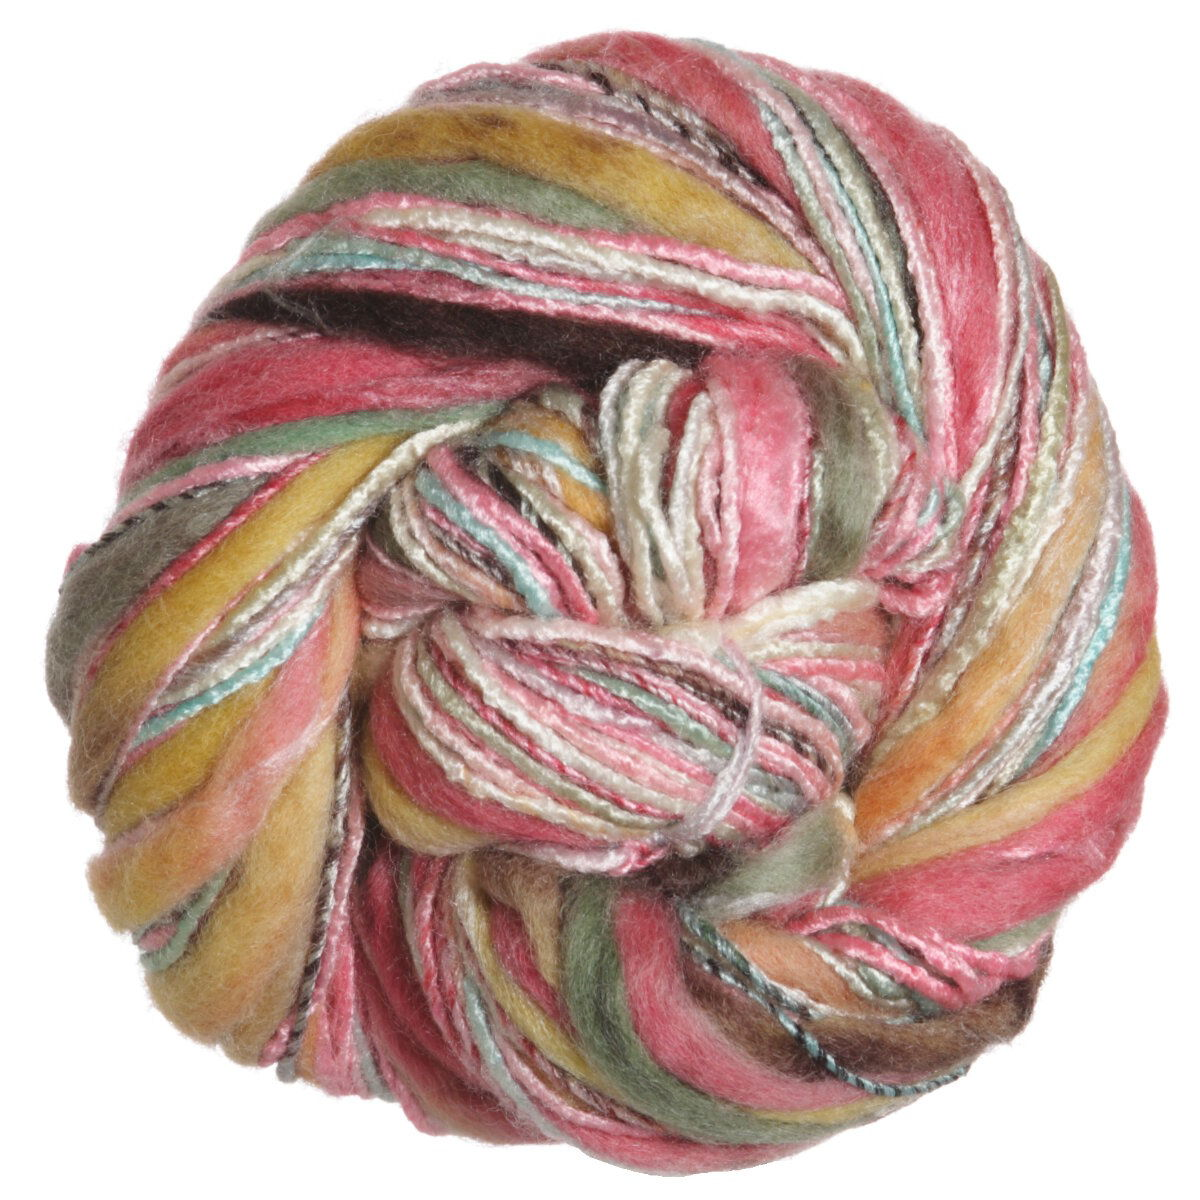 Bamboo Yarn : ... Yarns Bamboo Bloom Handpaints Yarn - 308 Pagoda at Jimmy Beans Wool